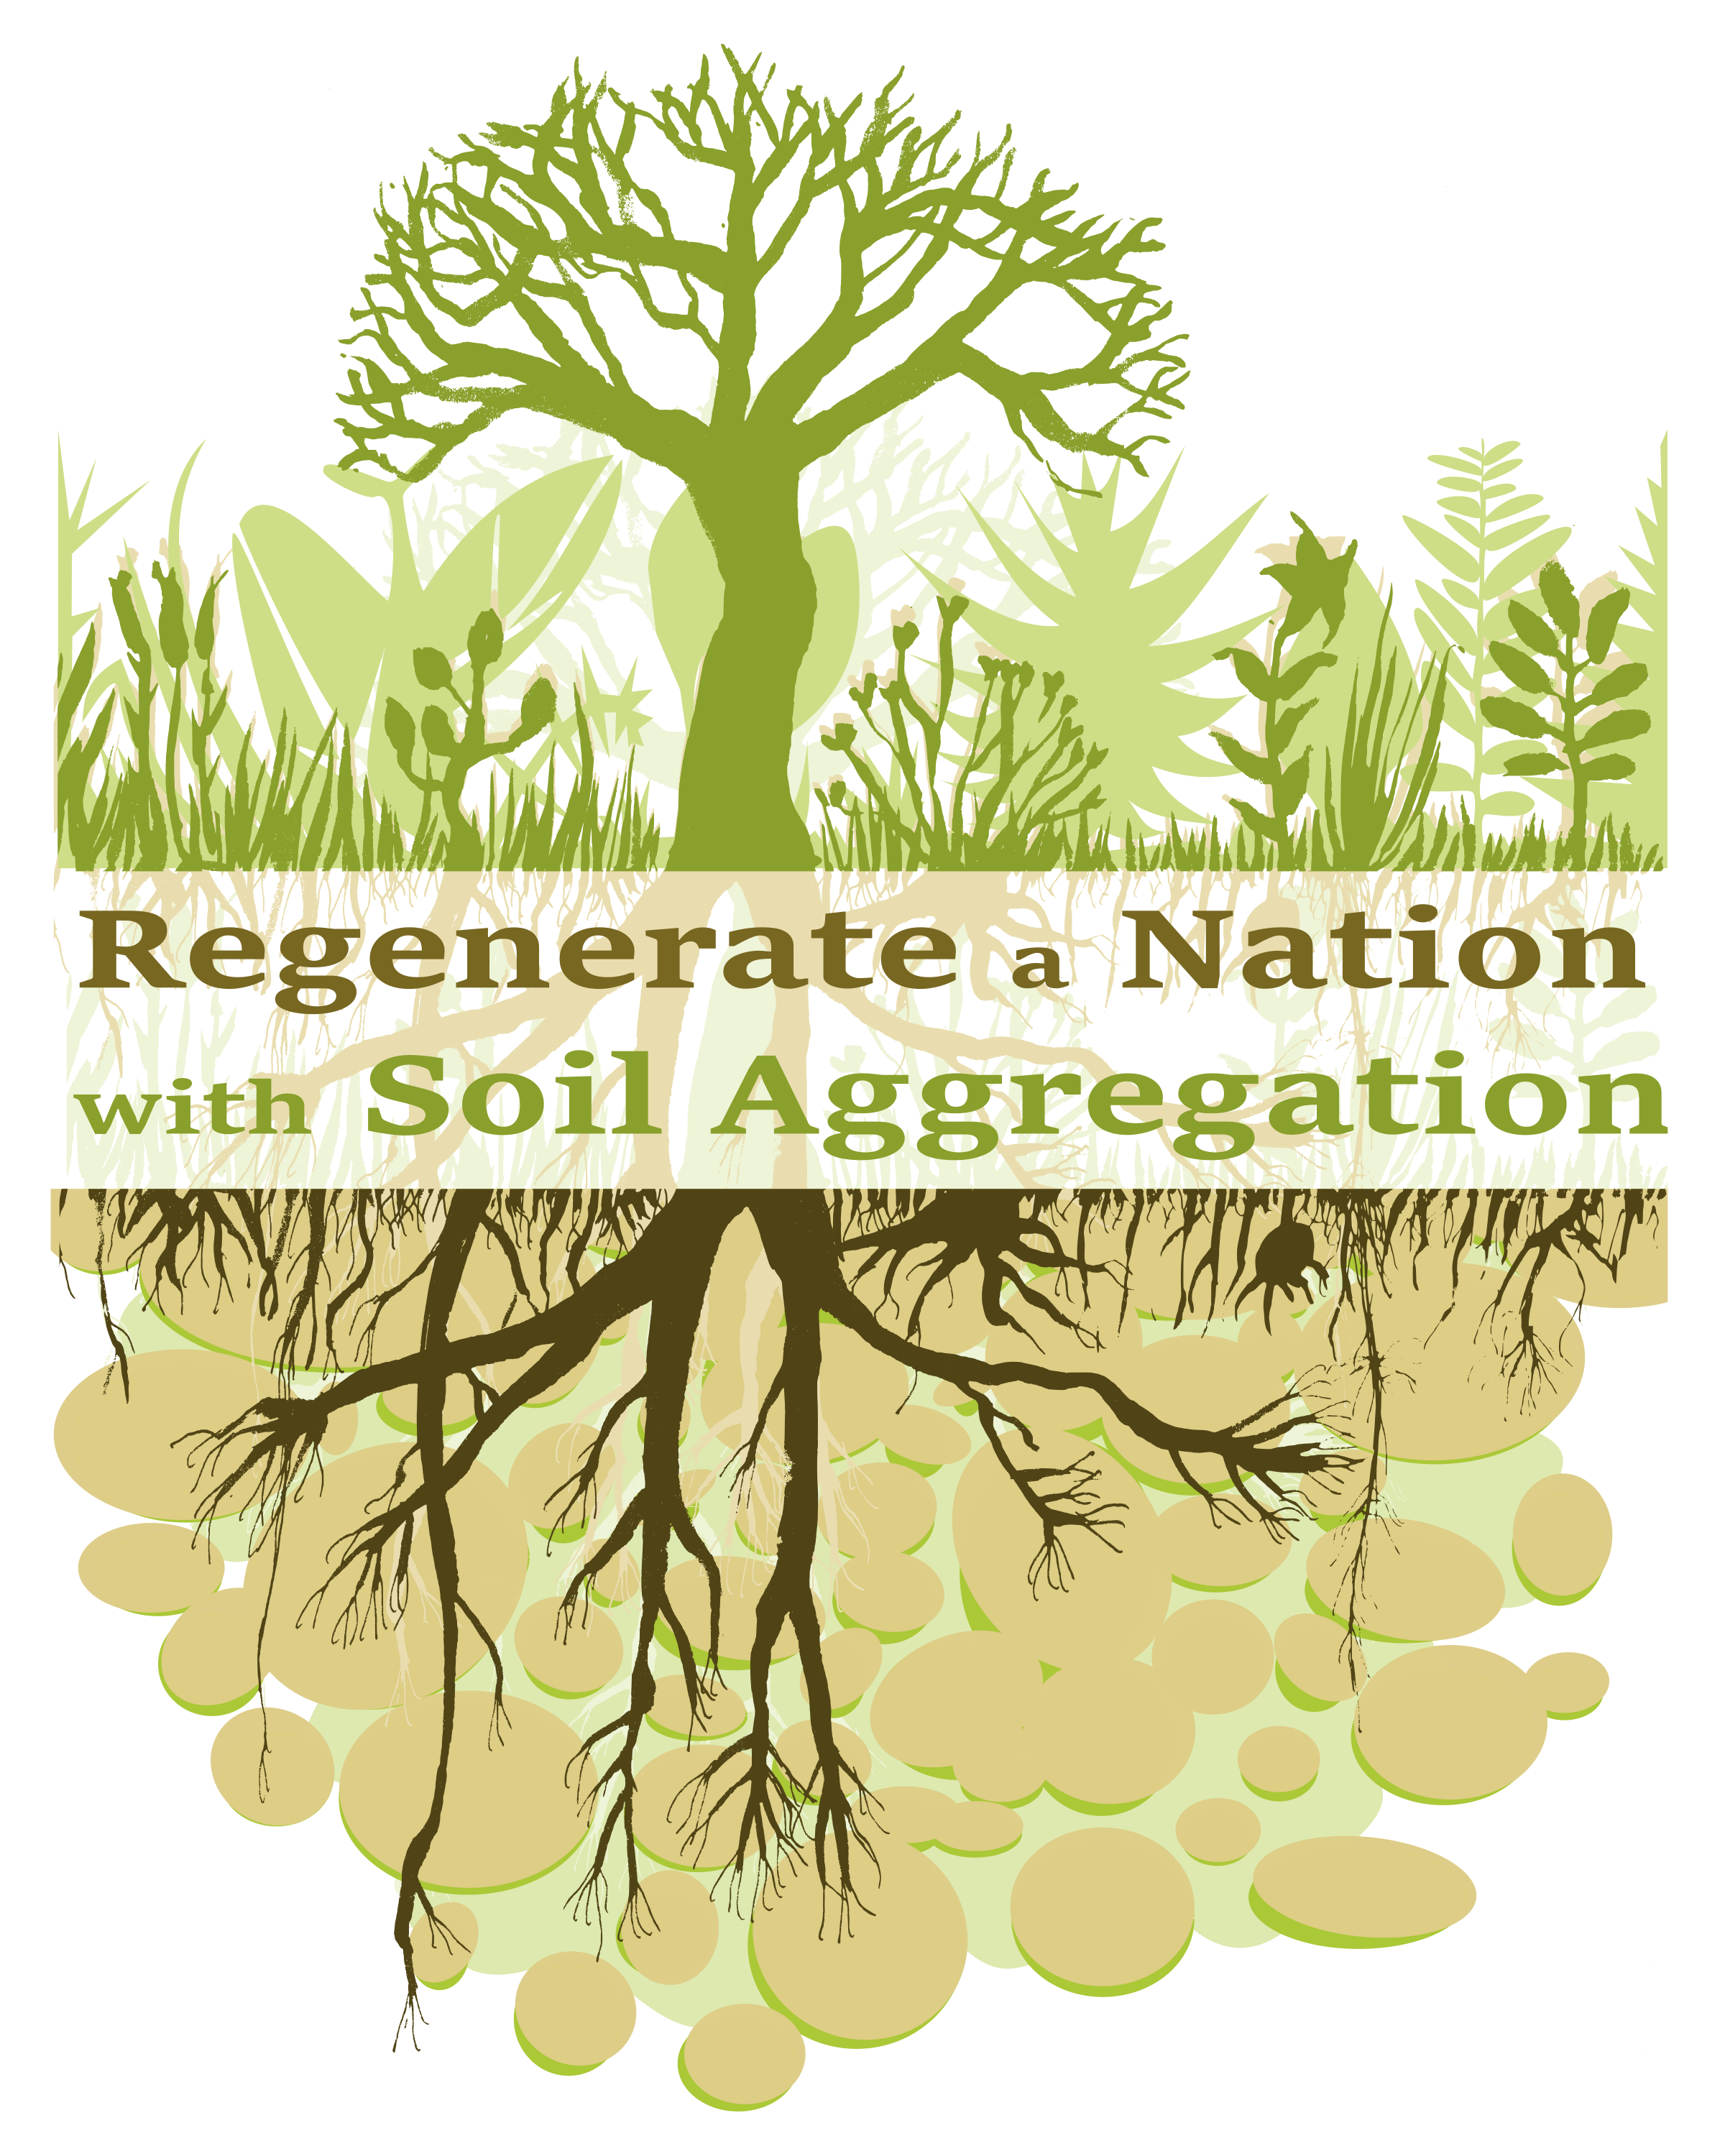 Soil Regeneration: Downloadable poster you can print at home.